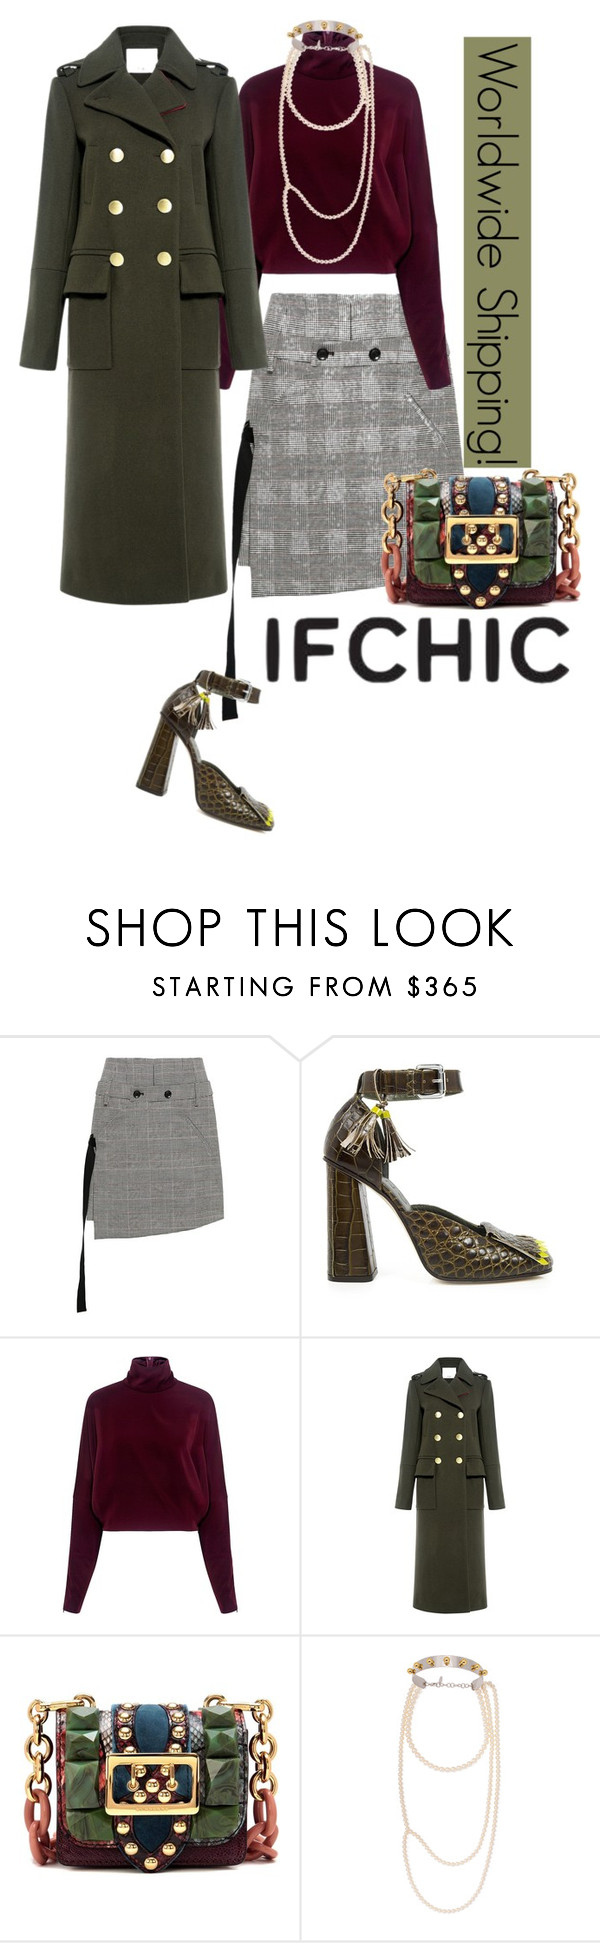 """If Chic--Now offering shipping worldwide!"" by felicia-mcdonnell ❤ liked on Polyvore featuring Marissa Webb, SUNO New York, McQ by Alexander McQueen, TIBI, Burberry and Joomi Lim"